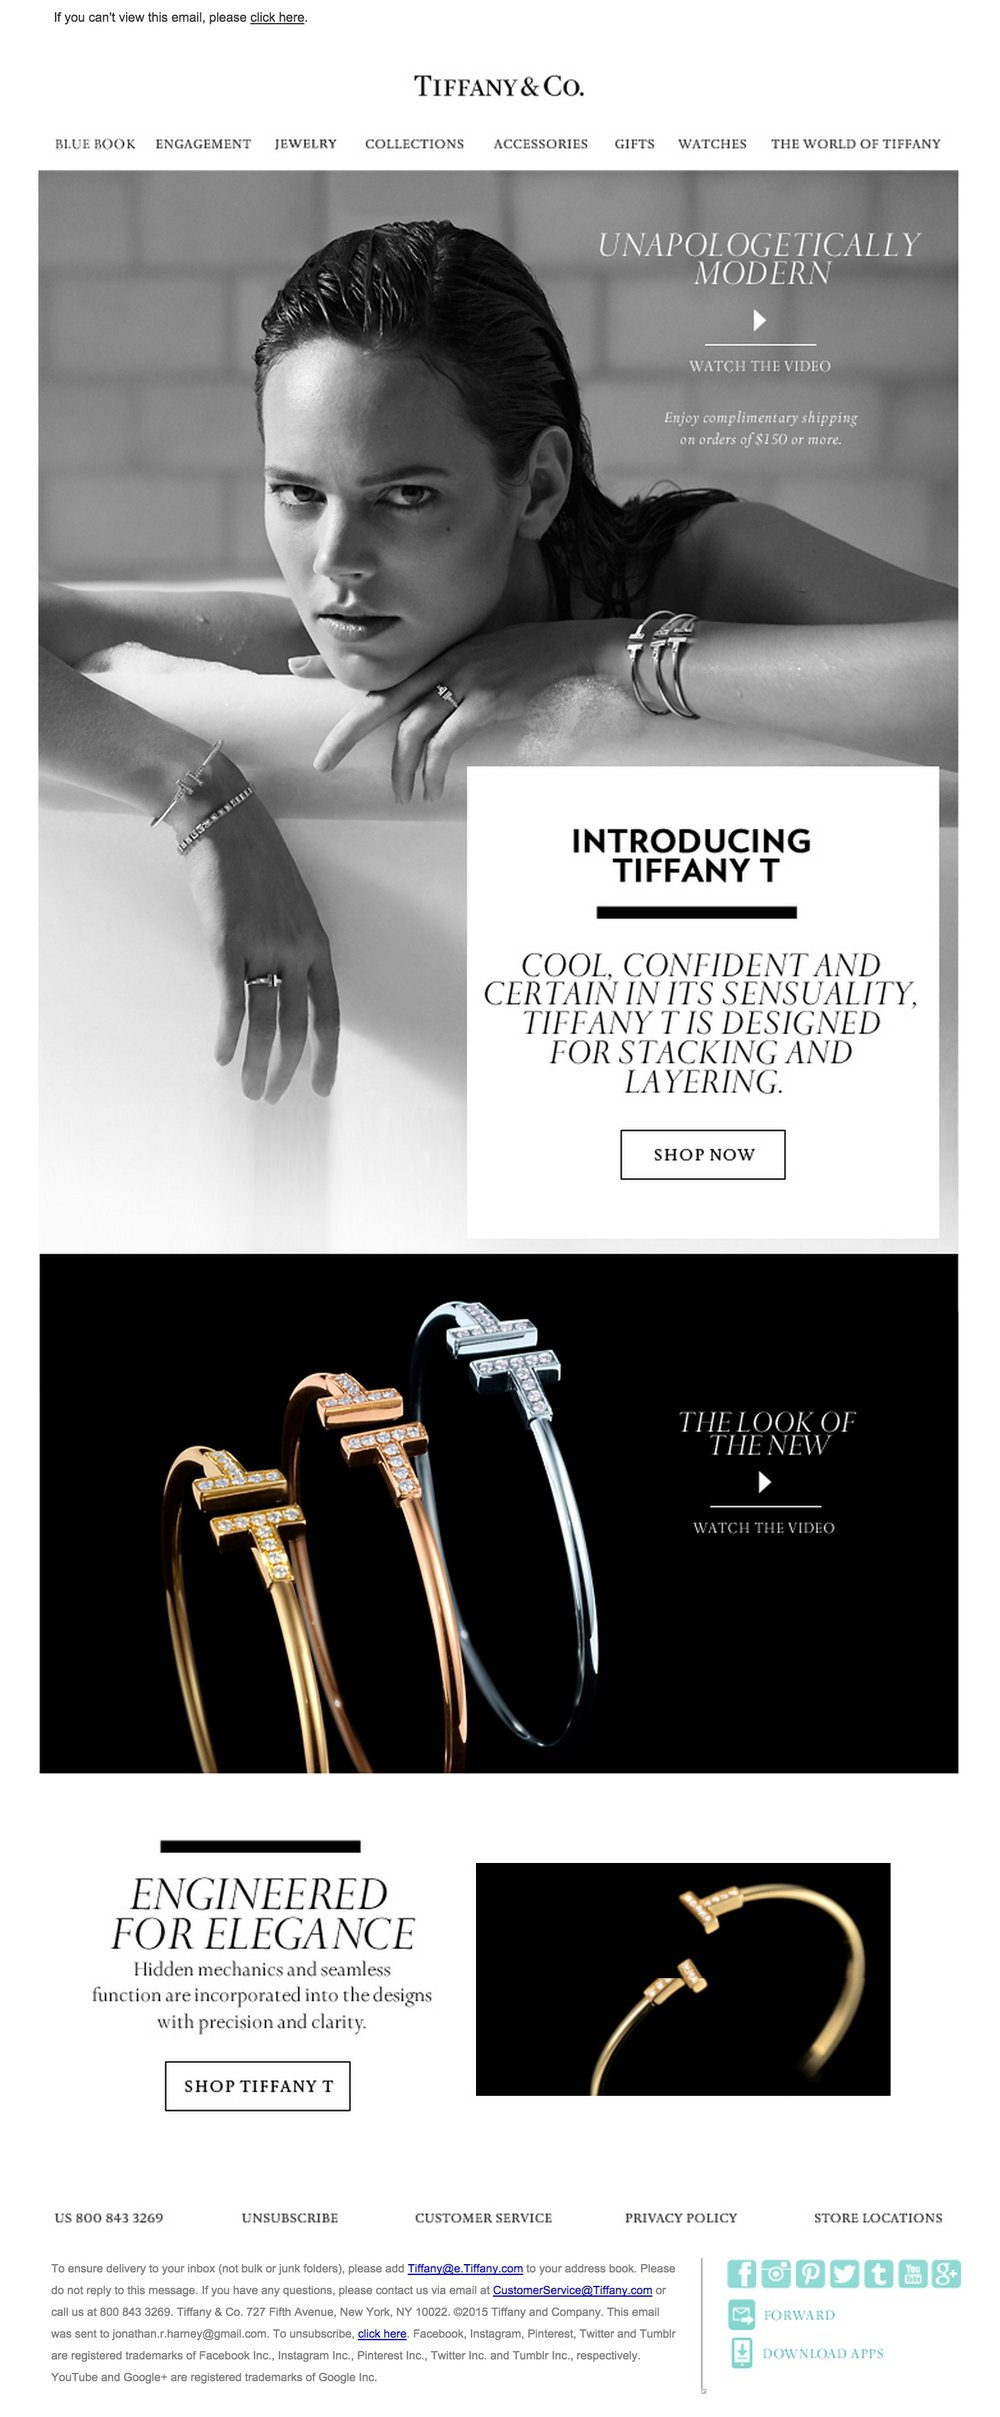 The Look of the Modern  New Tiffany T.png